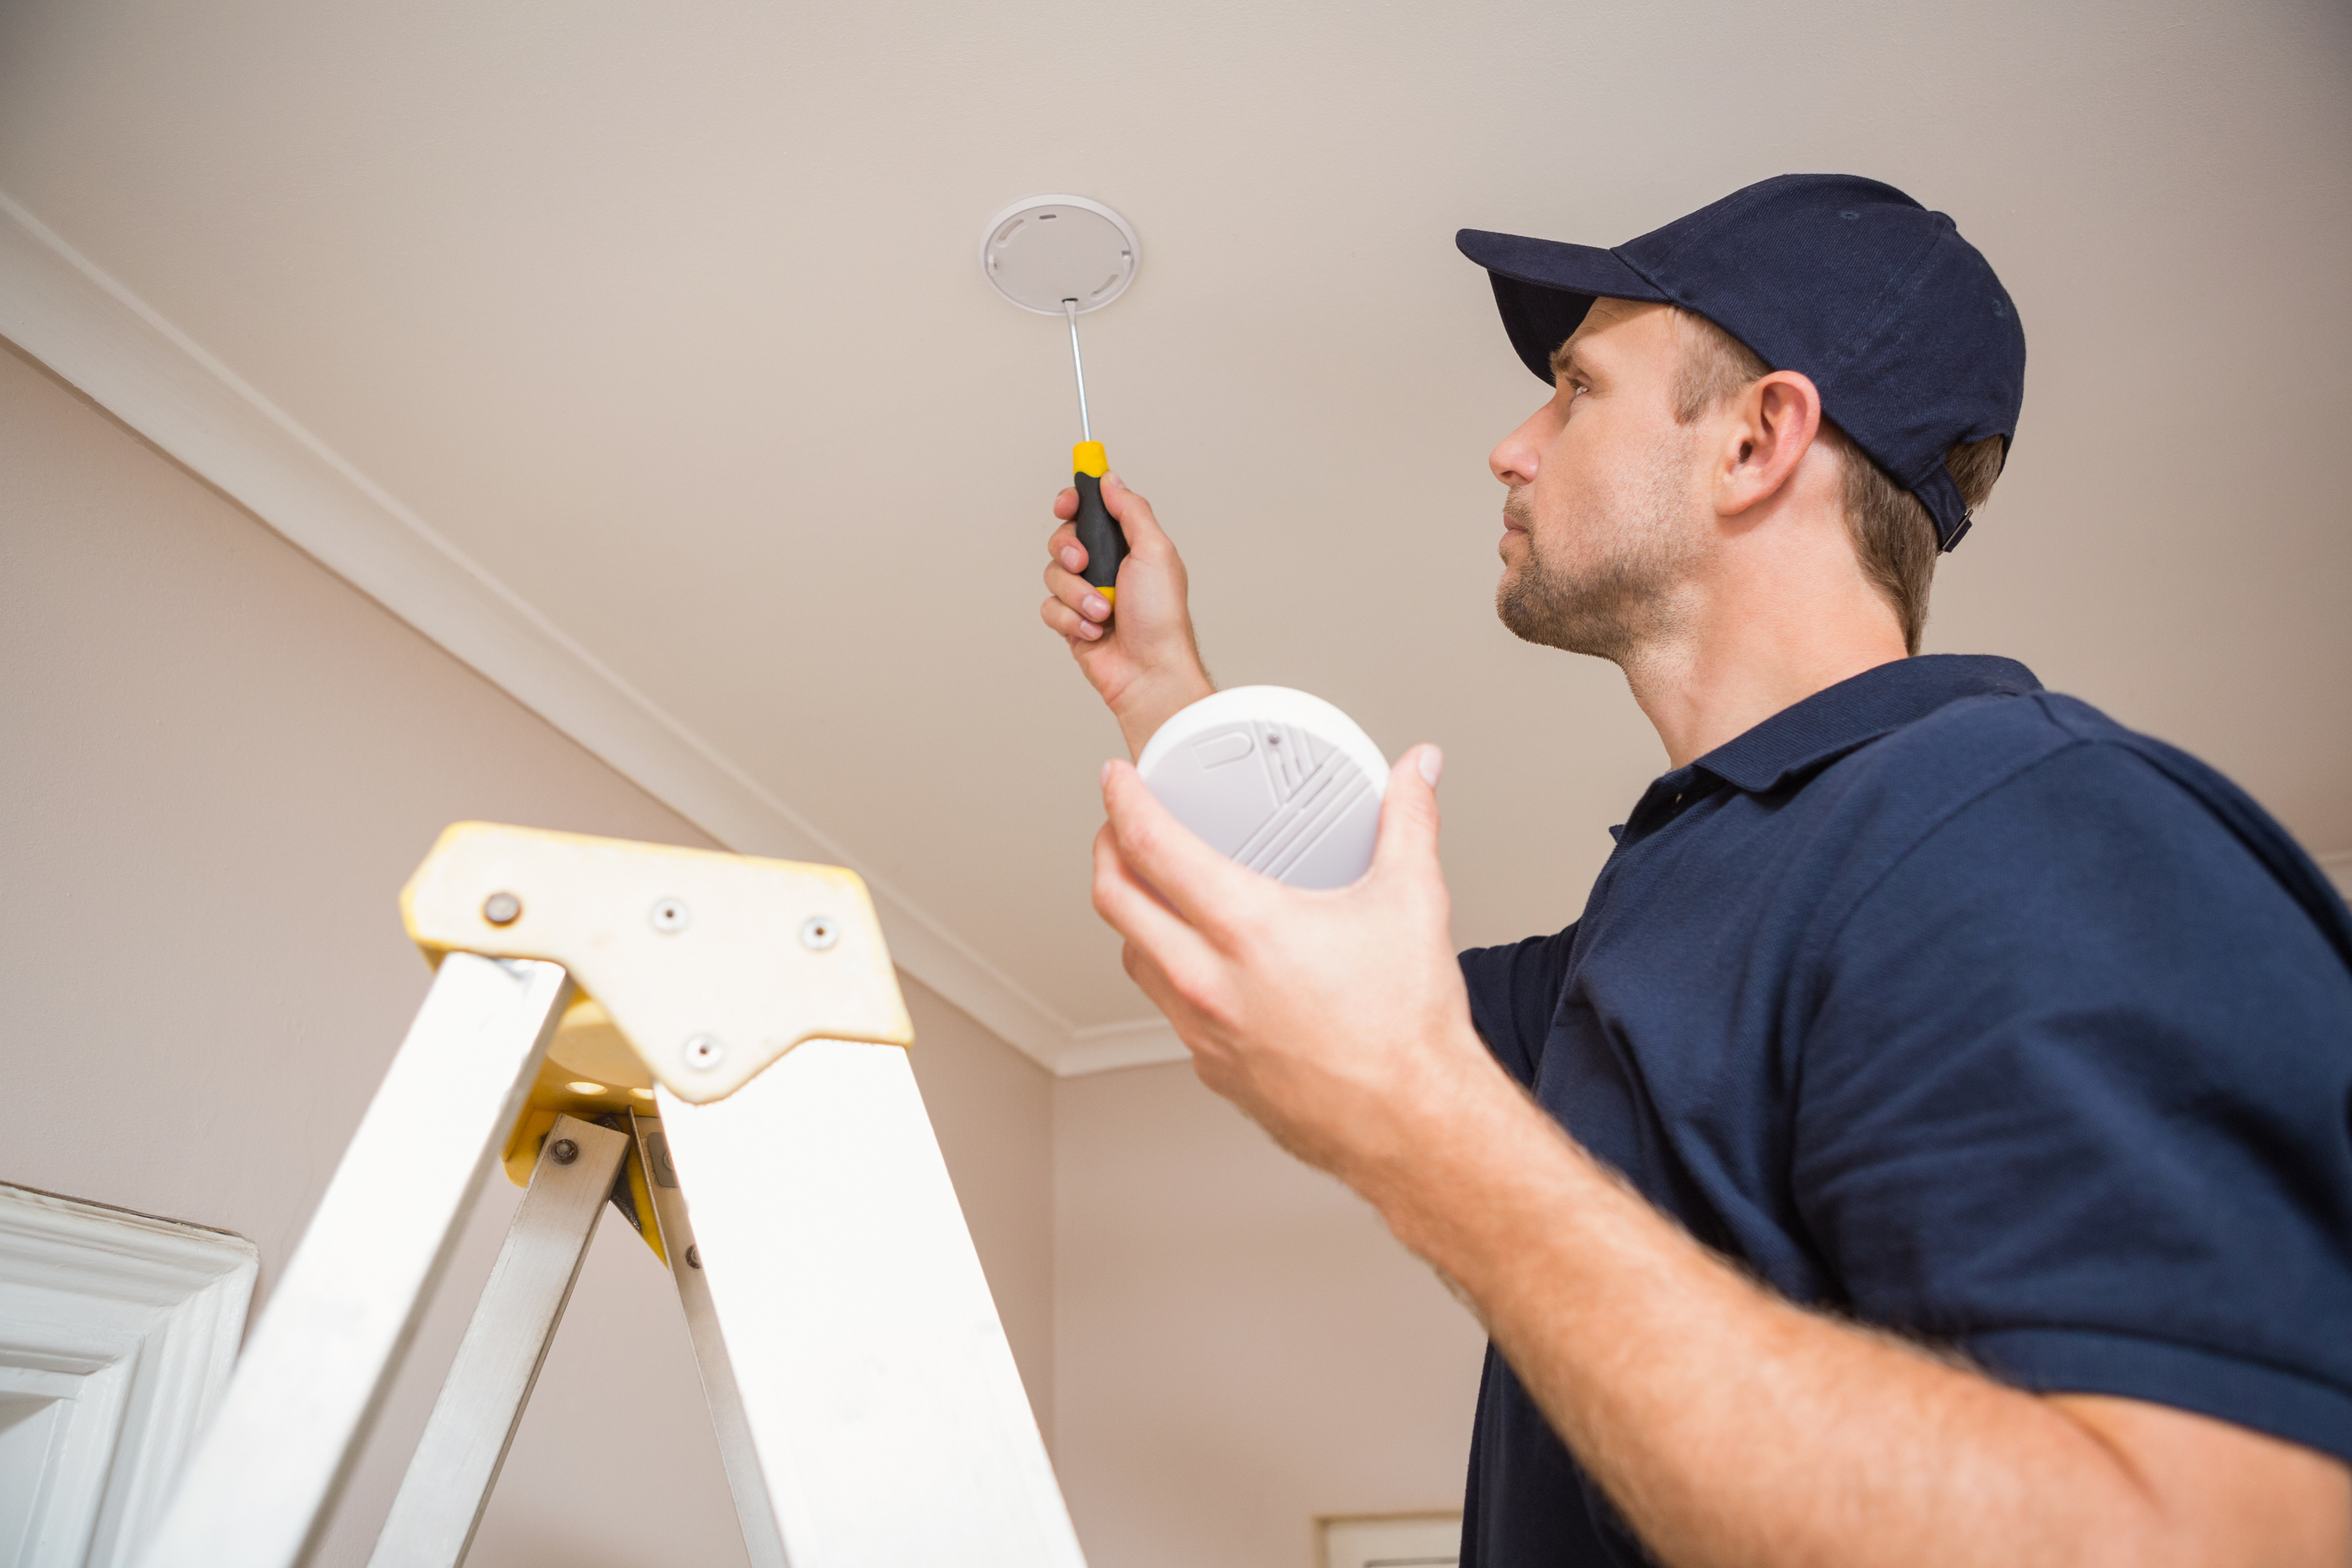 Handyman installing smoke detector with screwdriver on the ceiling.jpg